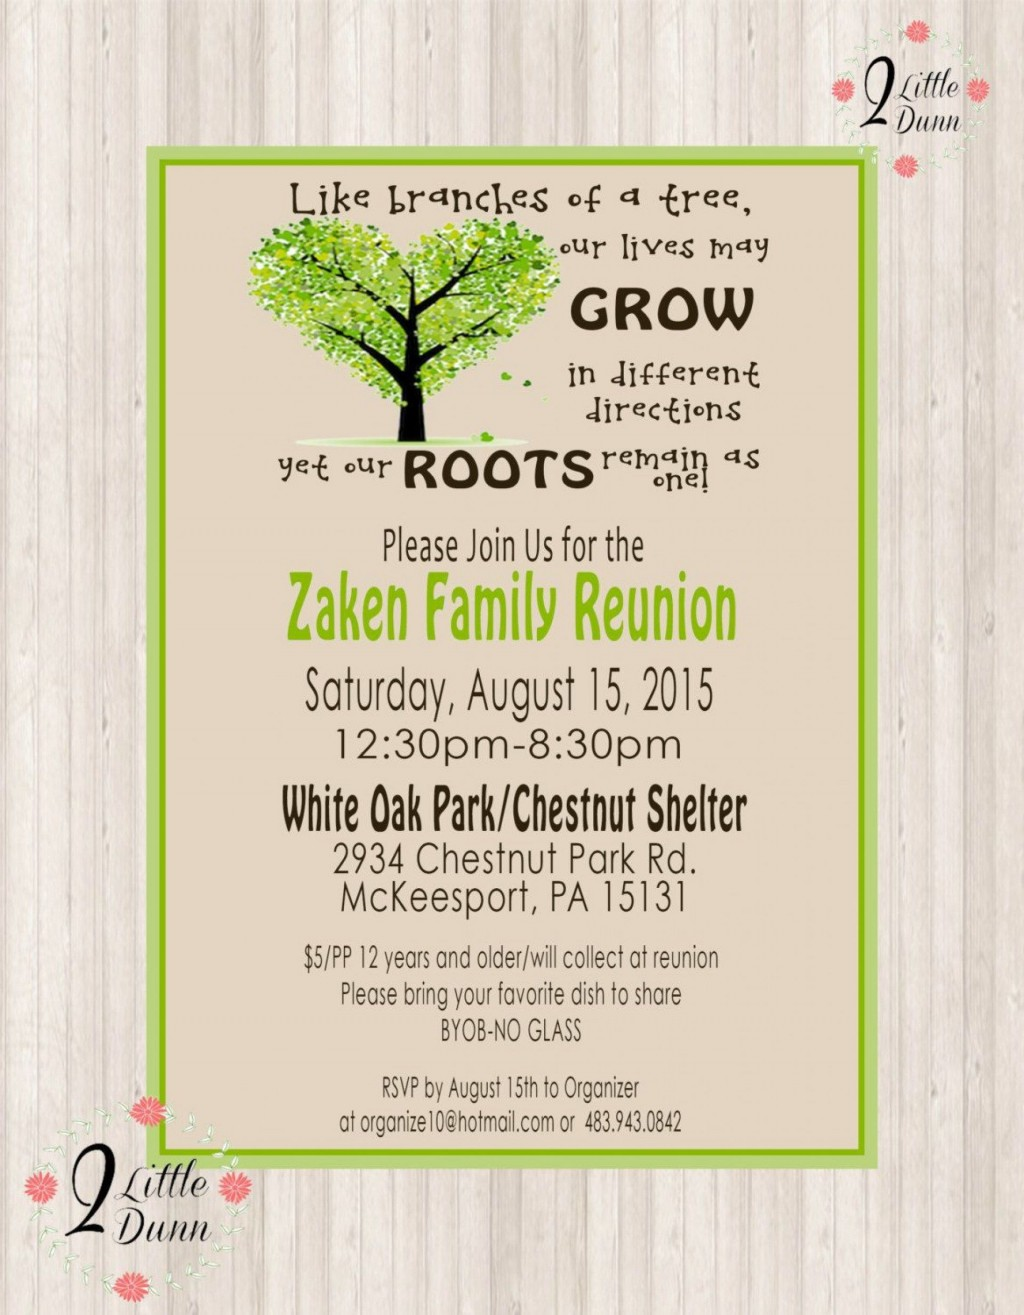 009 Remarkable Free Downloadable Family Reunion Flyer Template Photo  TemplatesLarge